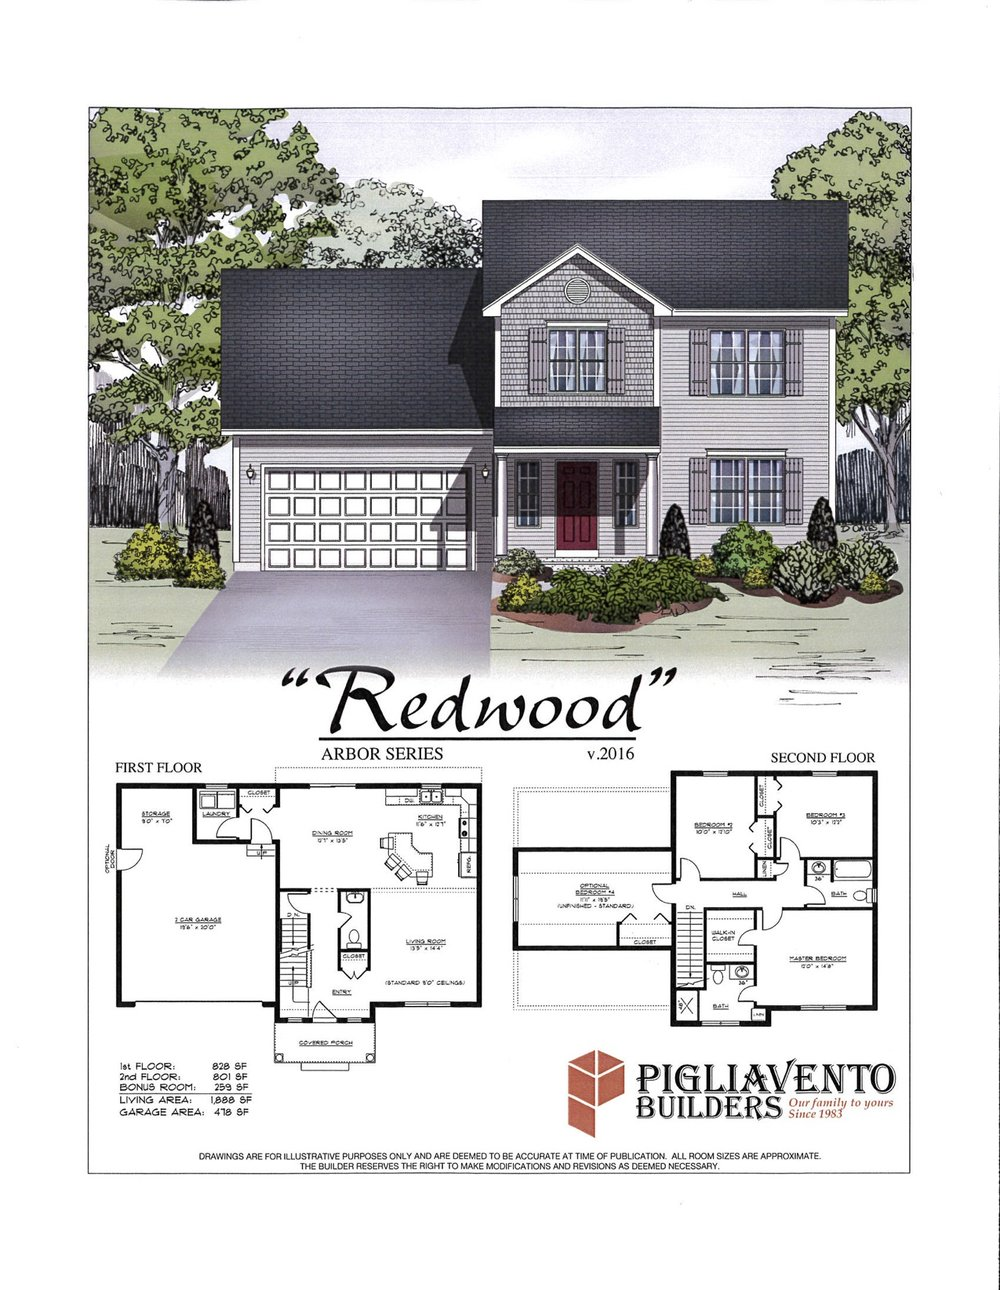 Redwood floor plan 1 copy.jpg